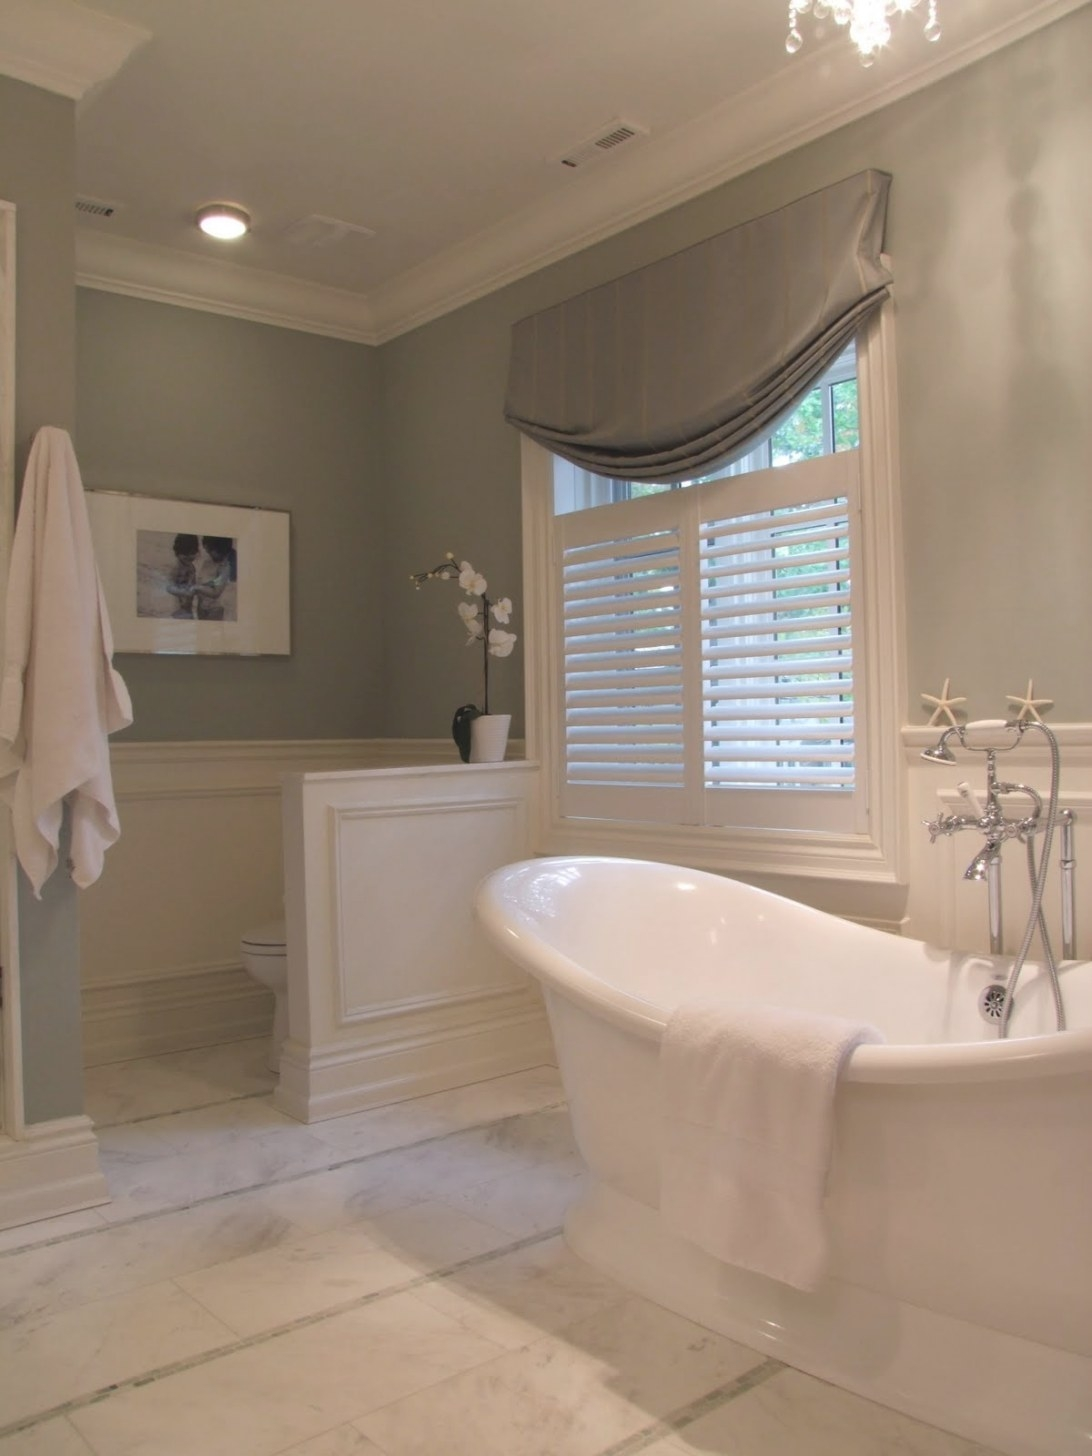 Creed: Archives: Family Bathroom with Small Privacy Window Bathrooms